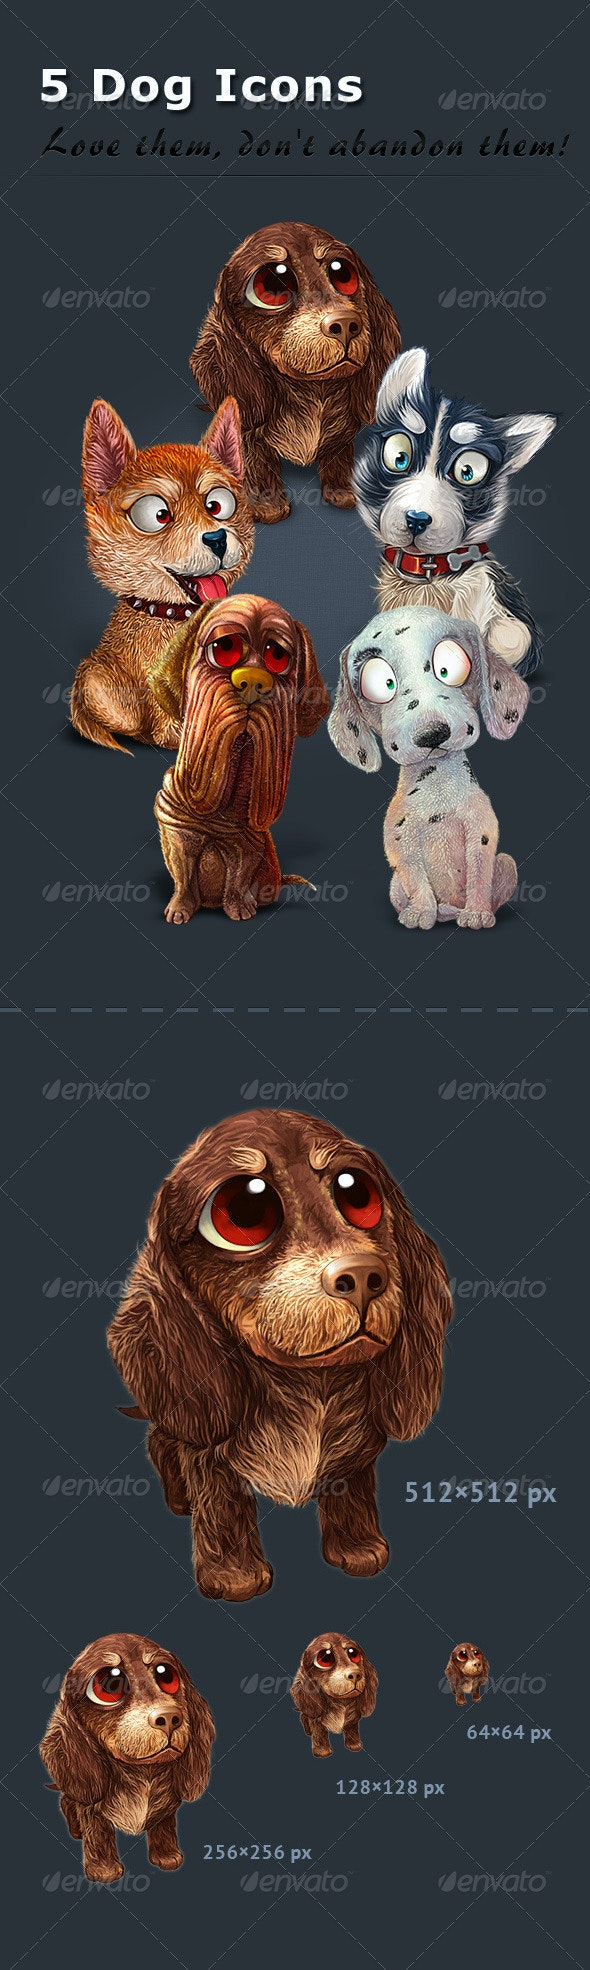 5 Dog Icons - Animals Characters